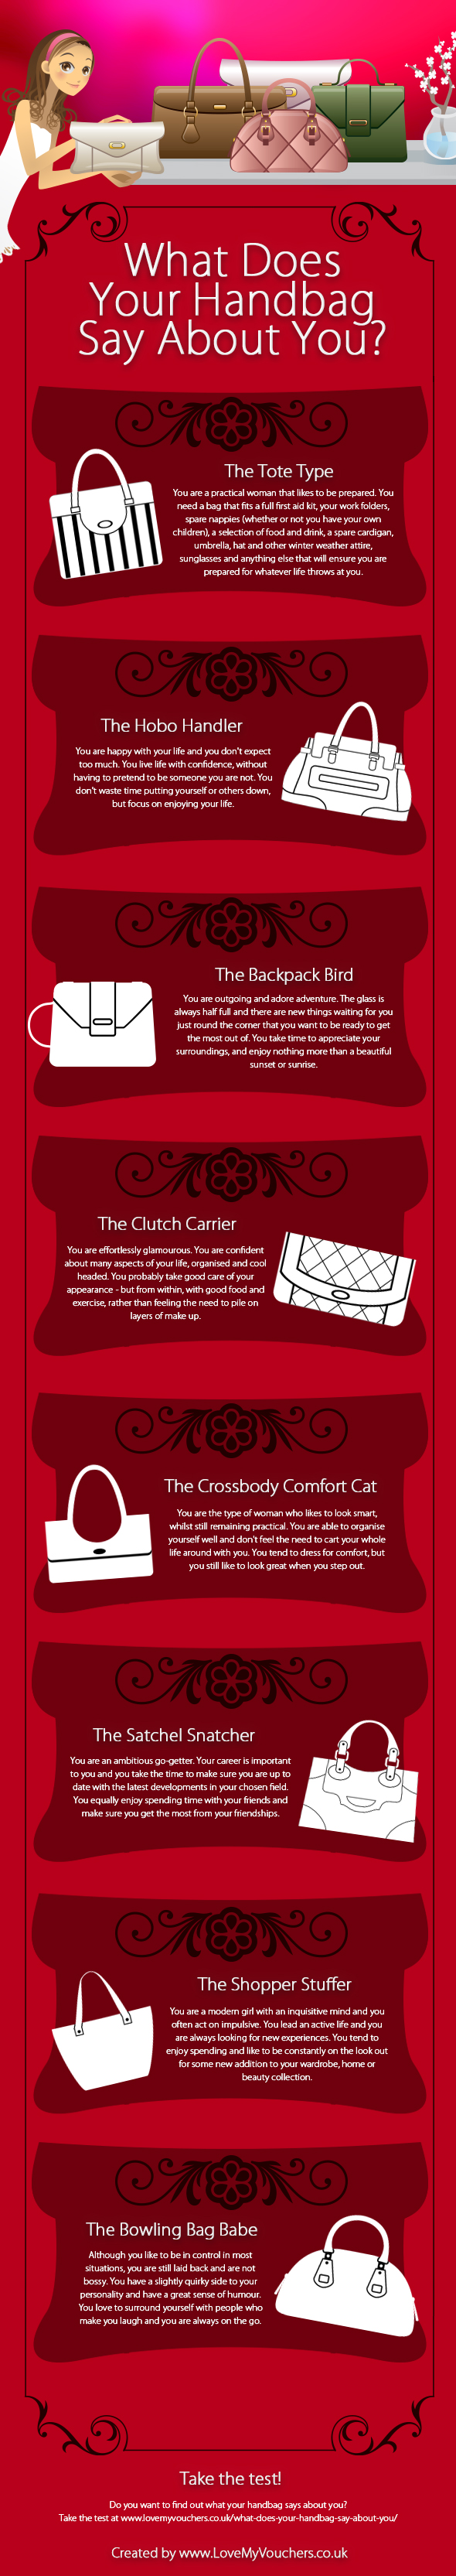 What Does Your Handbag Say About You?